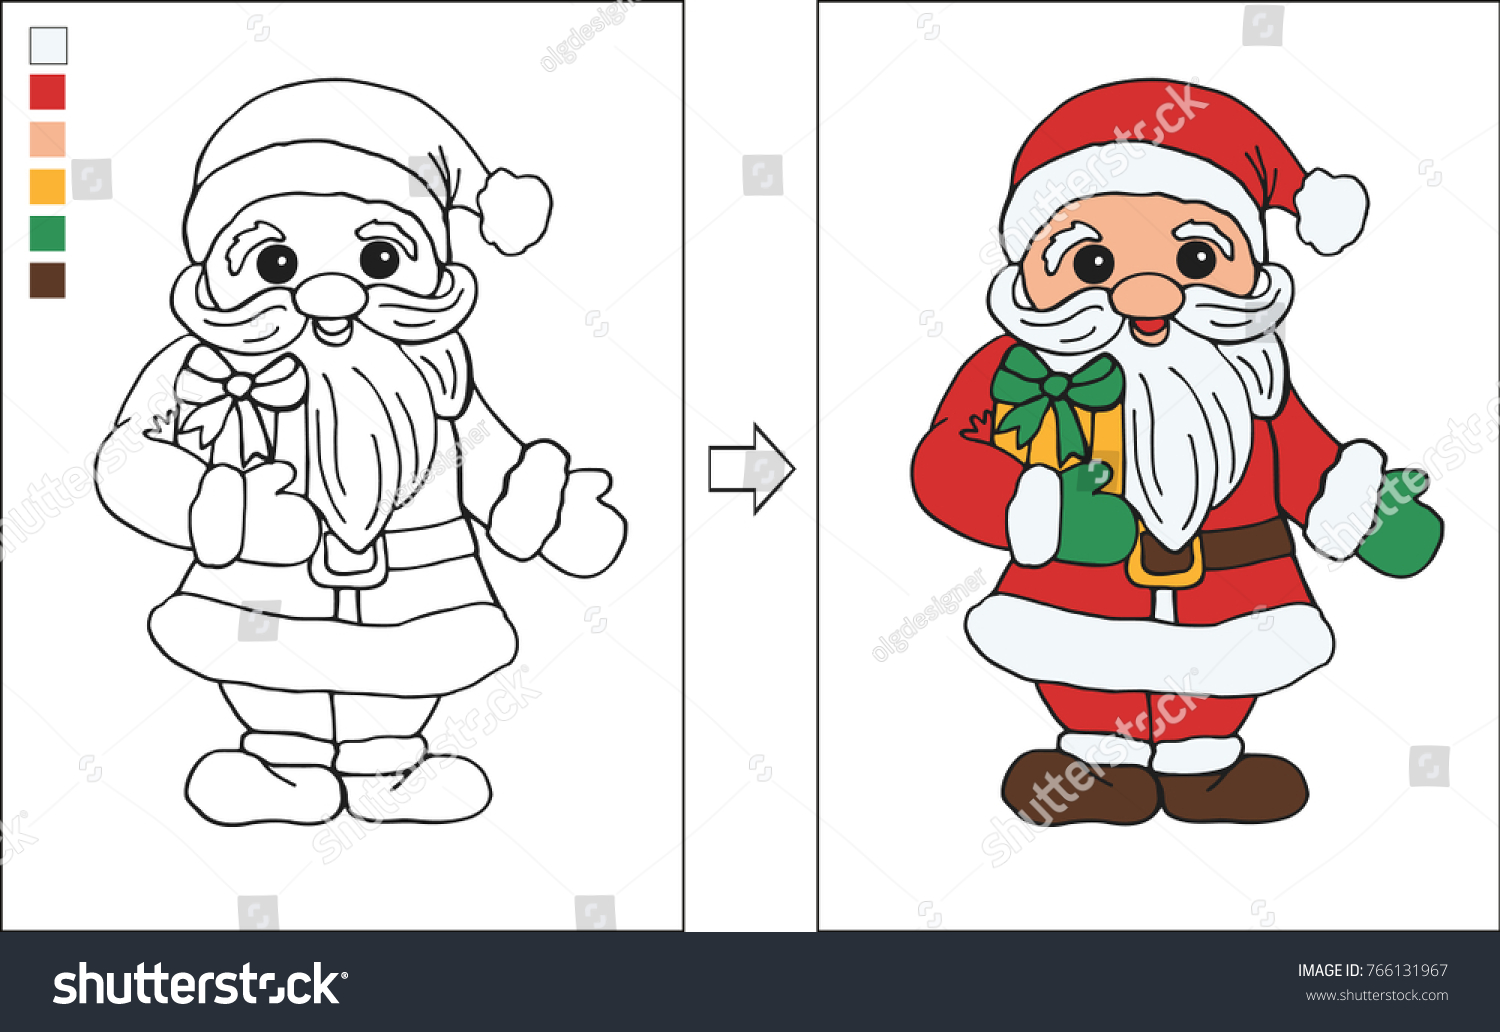 Christmas Coloring Page Santa Claus Little Stock Vector Royalty Free 766131967